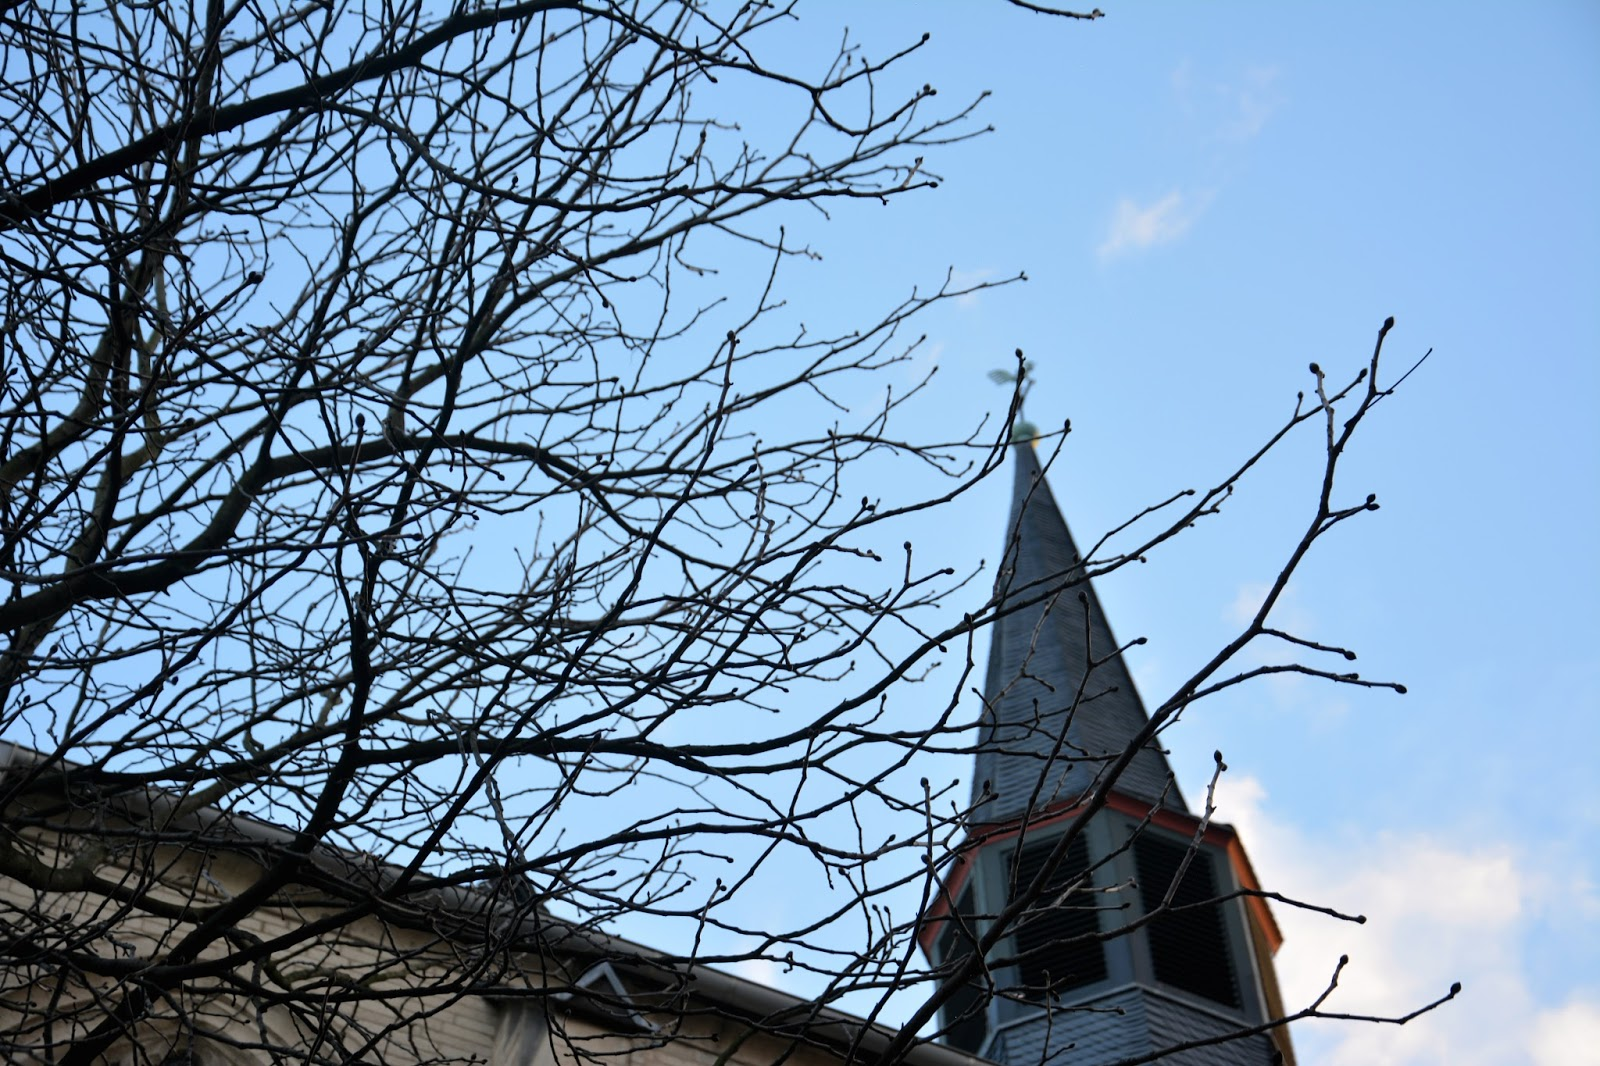 Tree branches in front of church tower on a blue sky